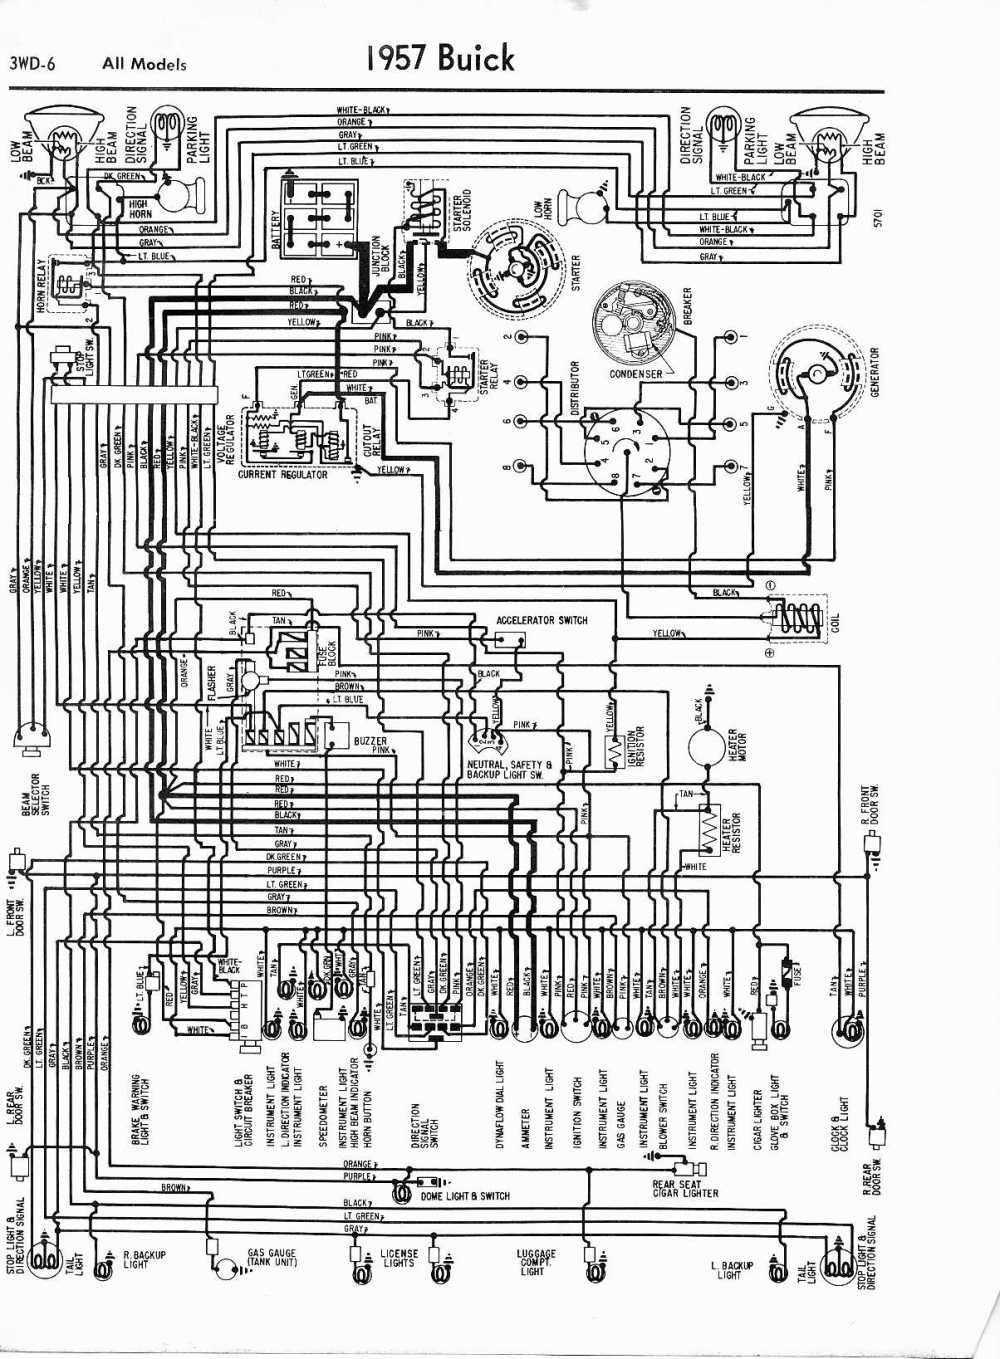 medium resolution of buick wiring diagrams 1957 1965 ceiling fan wiring schematic buick wiring schematics